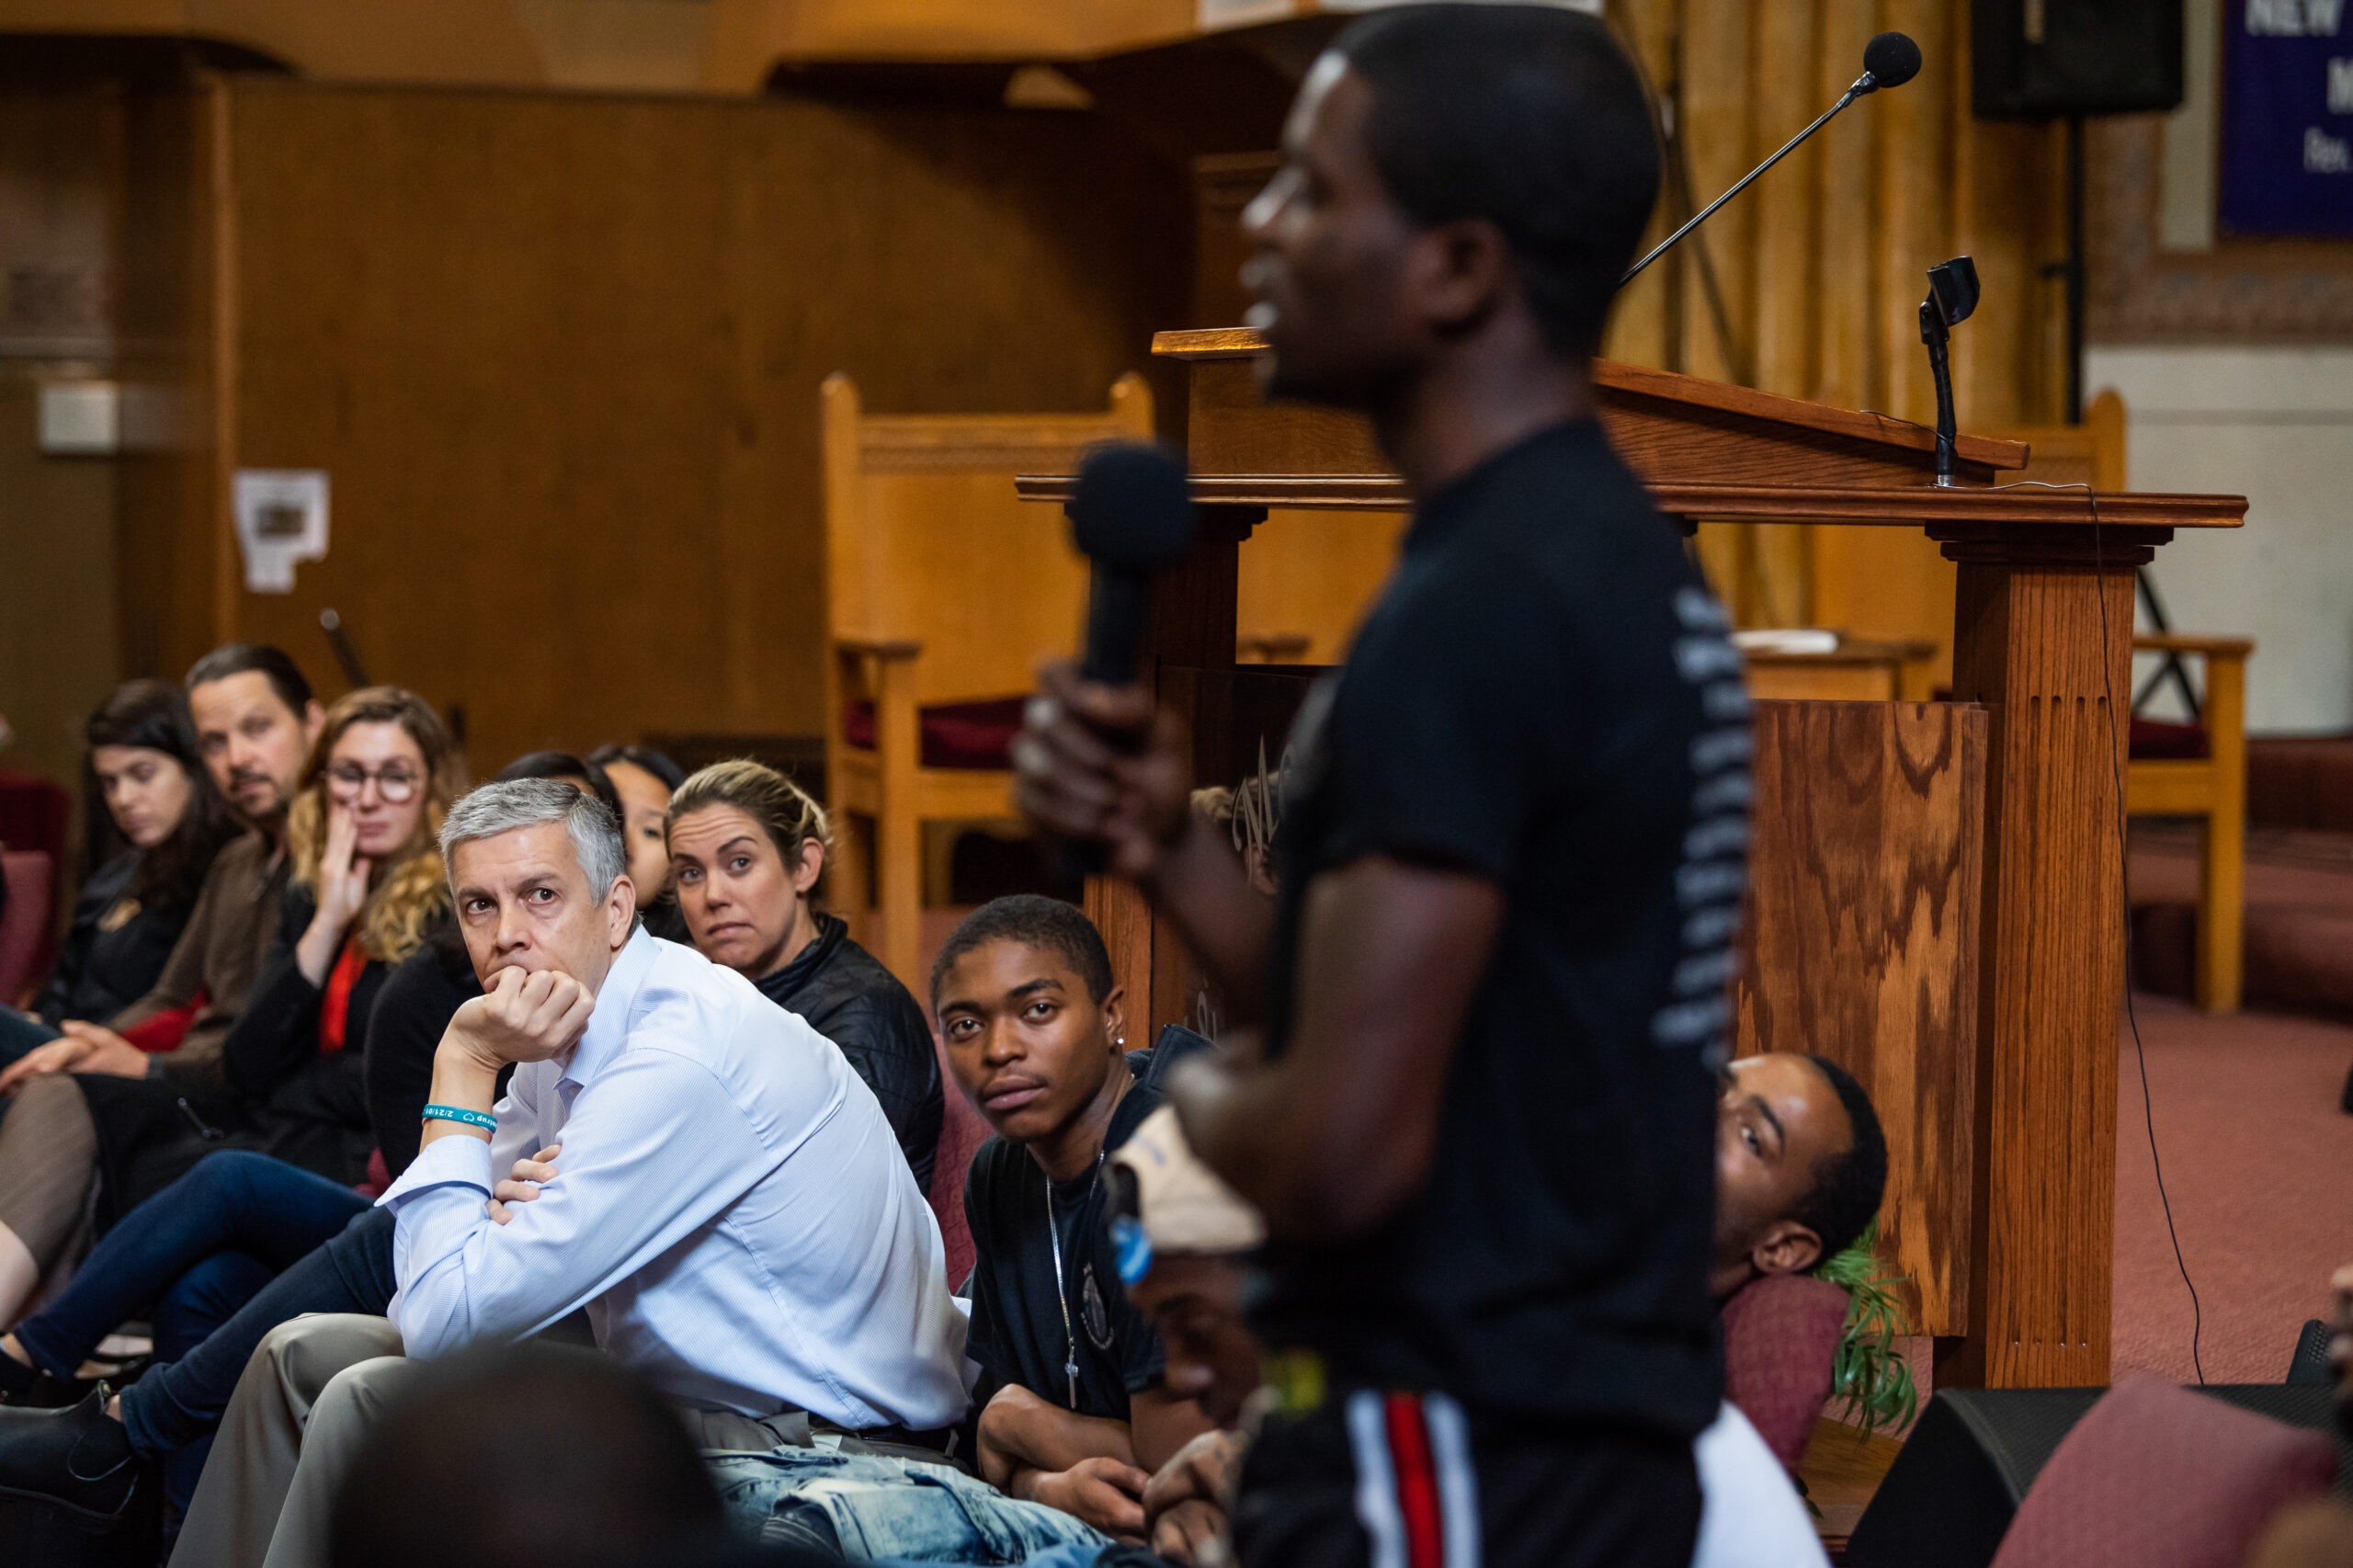 Arne Duncan watches a young man speaking to a crowd with a microphone.